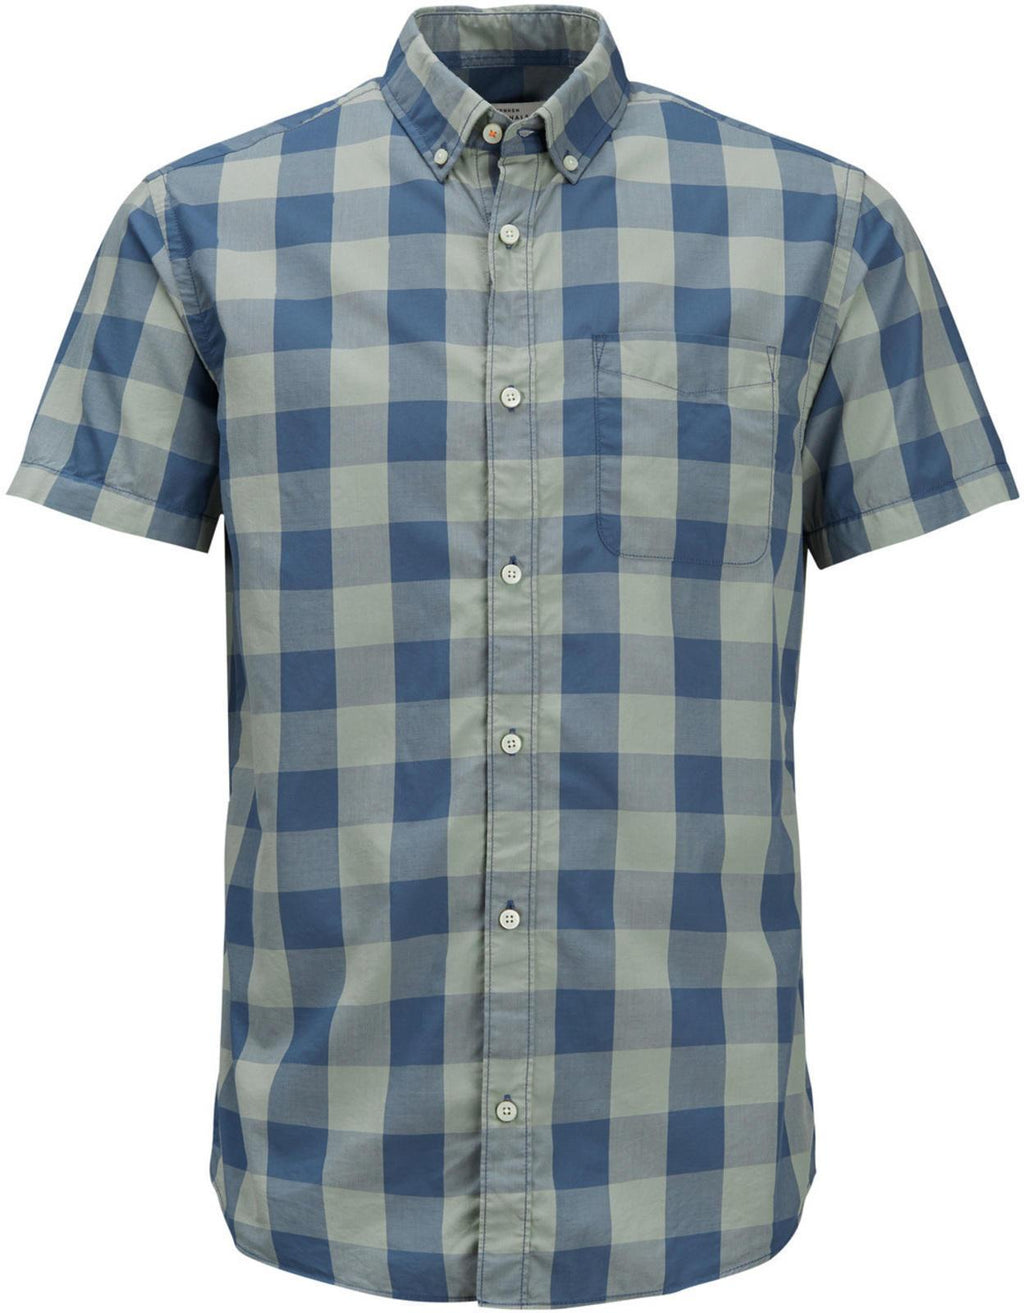 Jack & Jones Boise Slim Fit Short Sleeve Checked Shirt Green